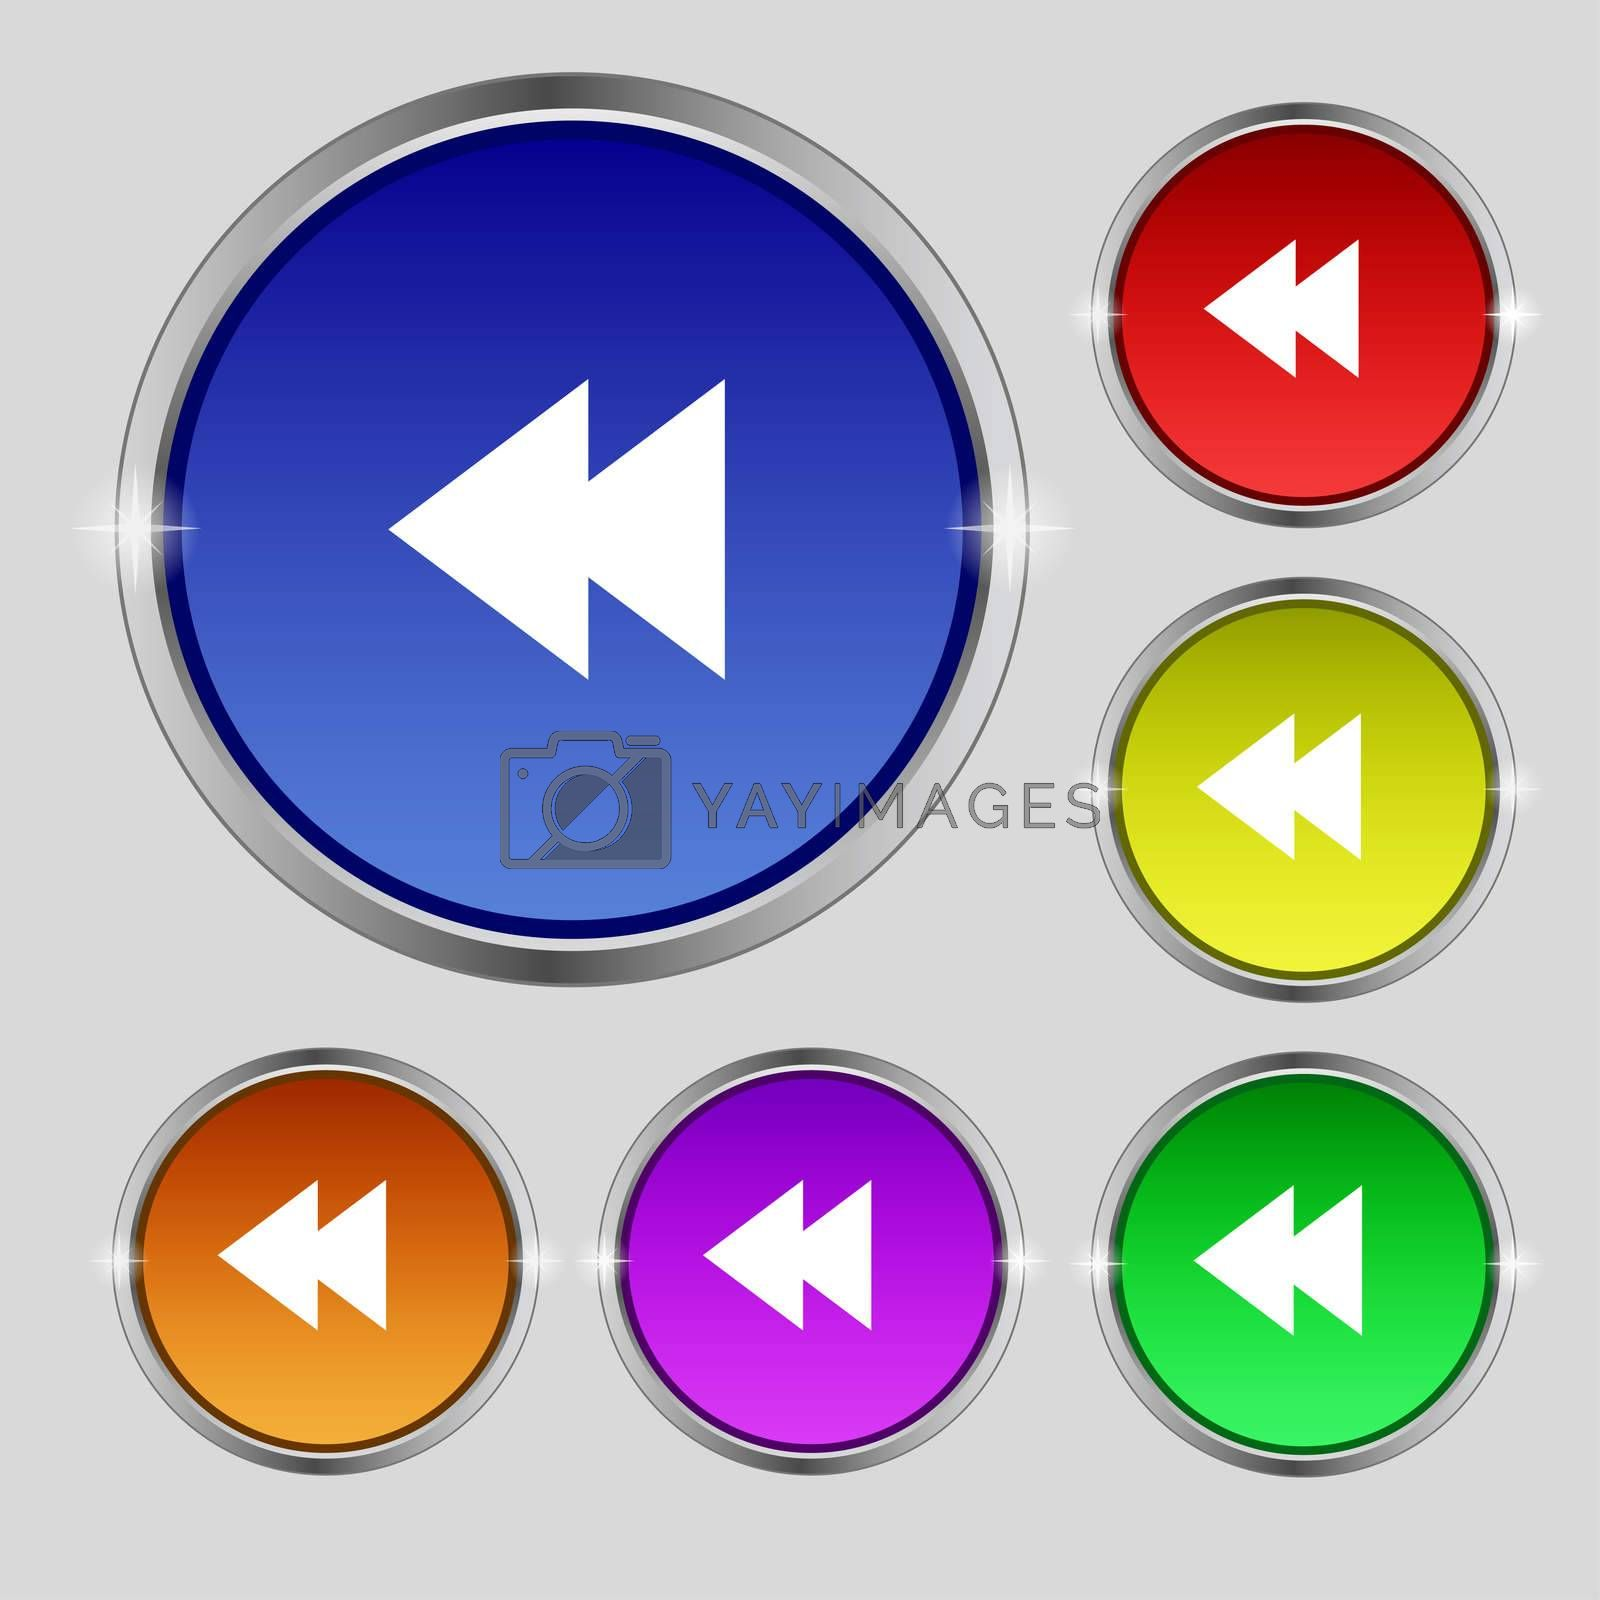 multimedia sign icon. Player navigation symbol. Set colour buttons.  by Serhii Lohvyniuk